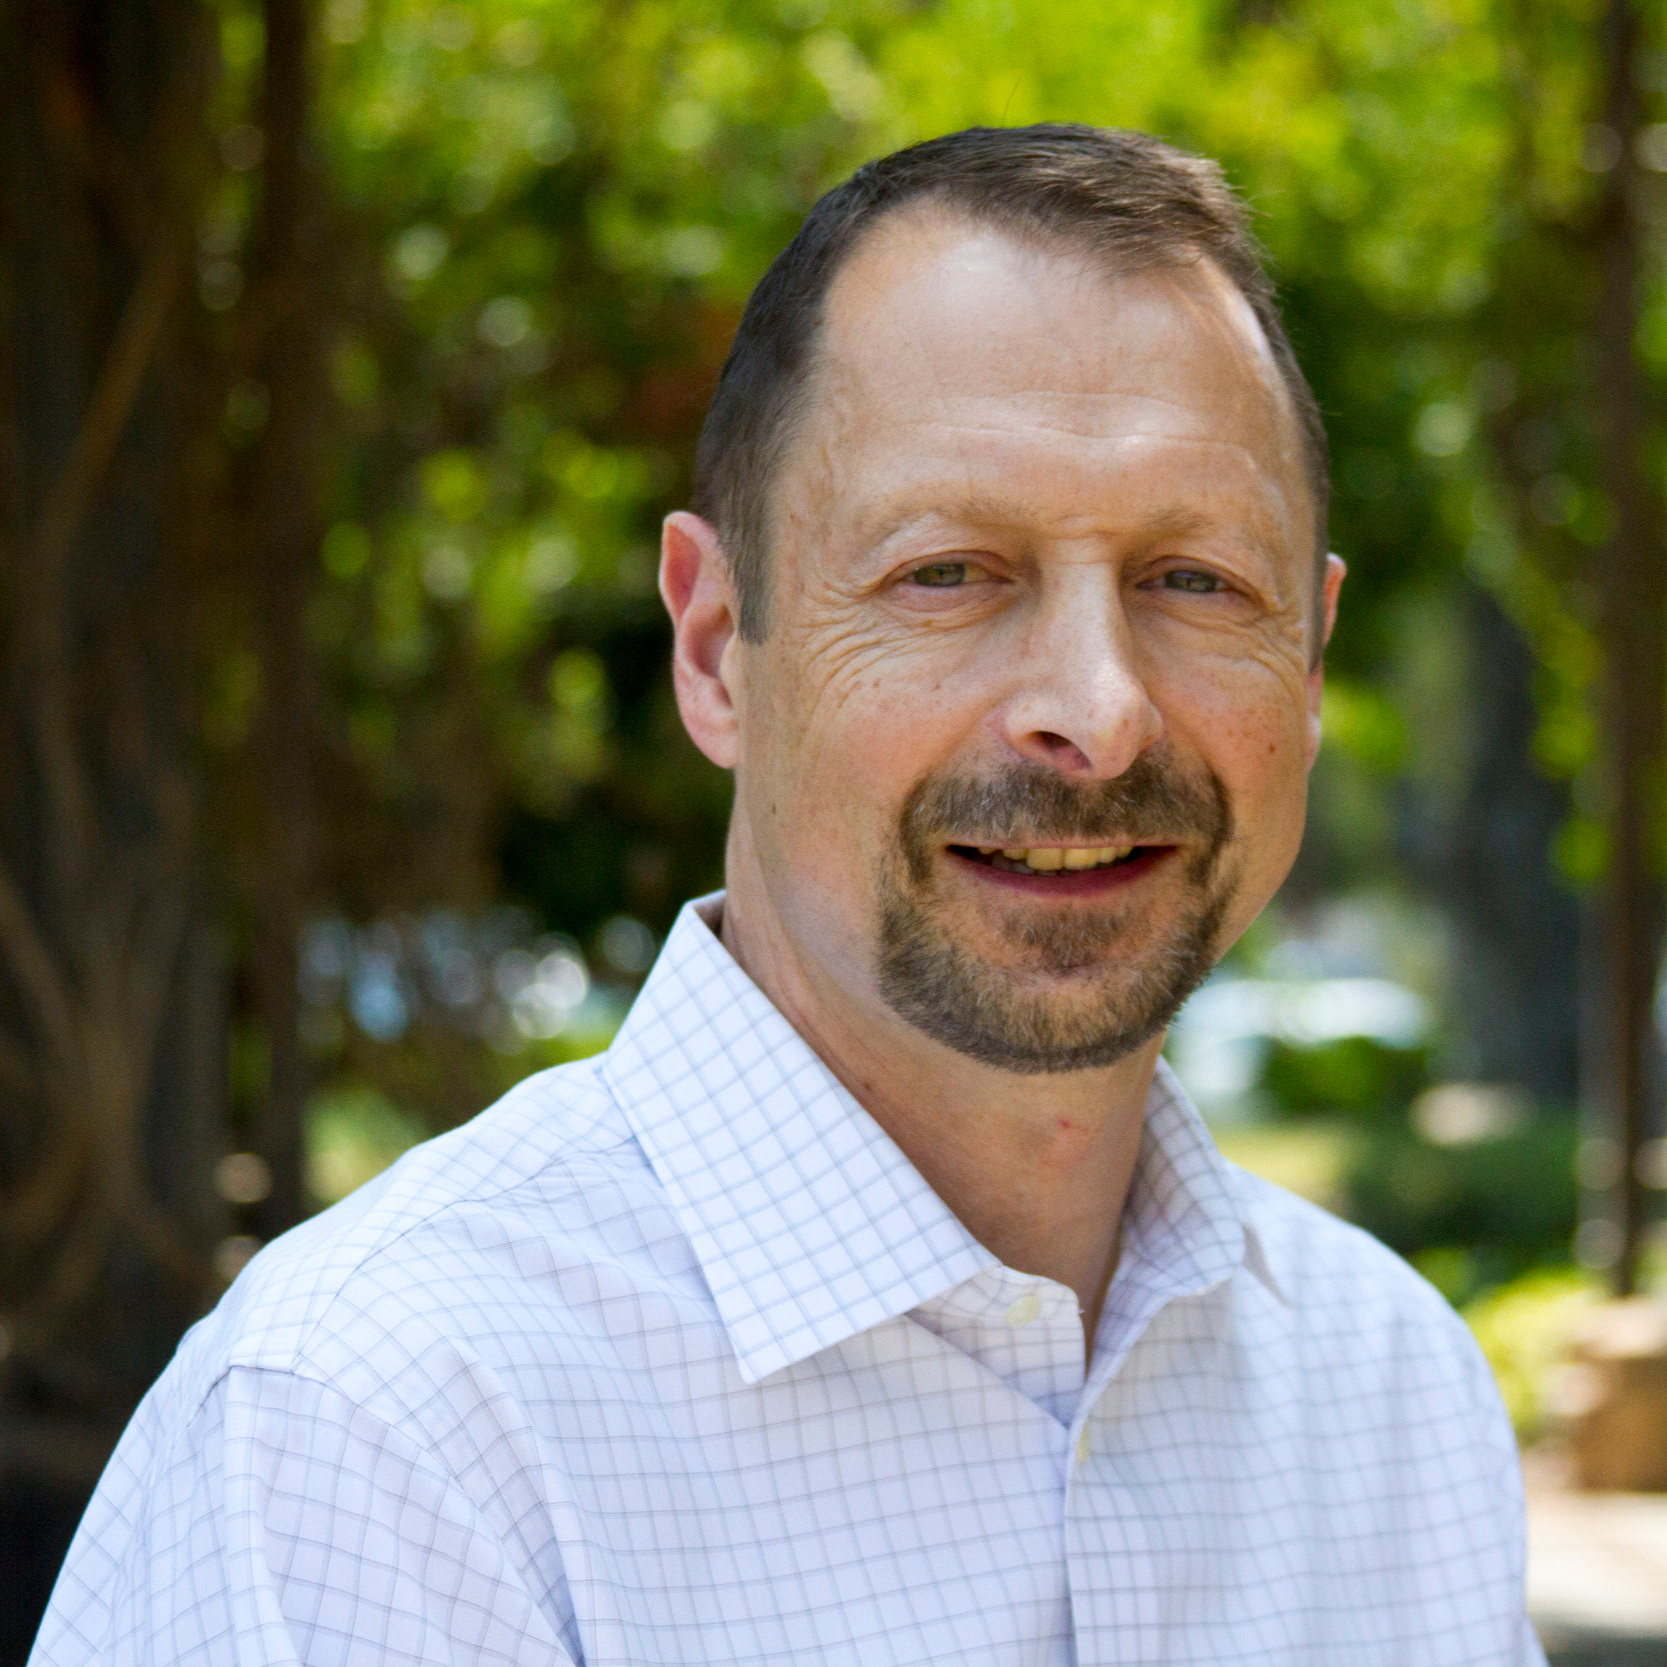 Tony J Simon, PhD - Co-Founder, CEO / Chief Science OfficerThe Associate Director of Behavioral Sciences at the UC Davis MIND Institute, Tony has over 30 years of research experience in typical and atypical neurocognitive development.